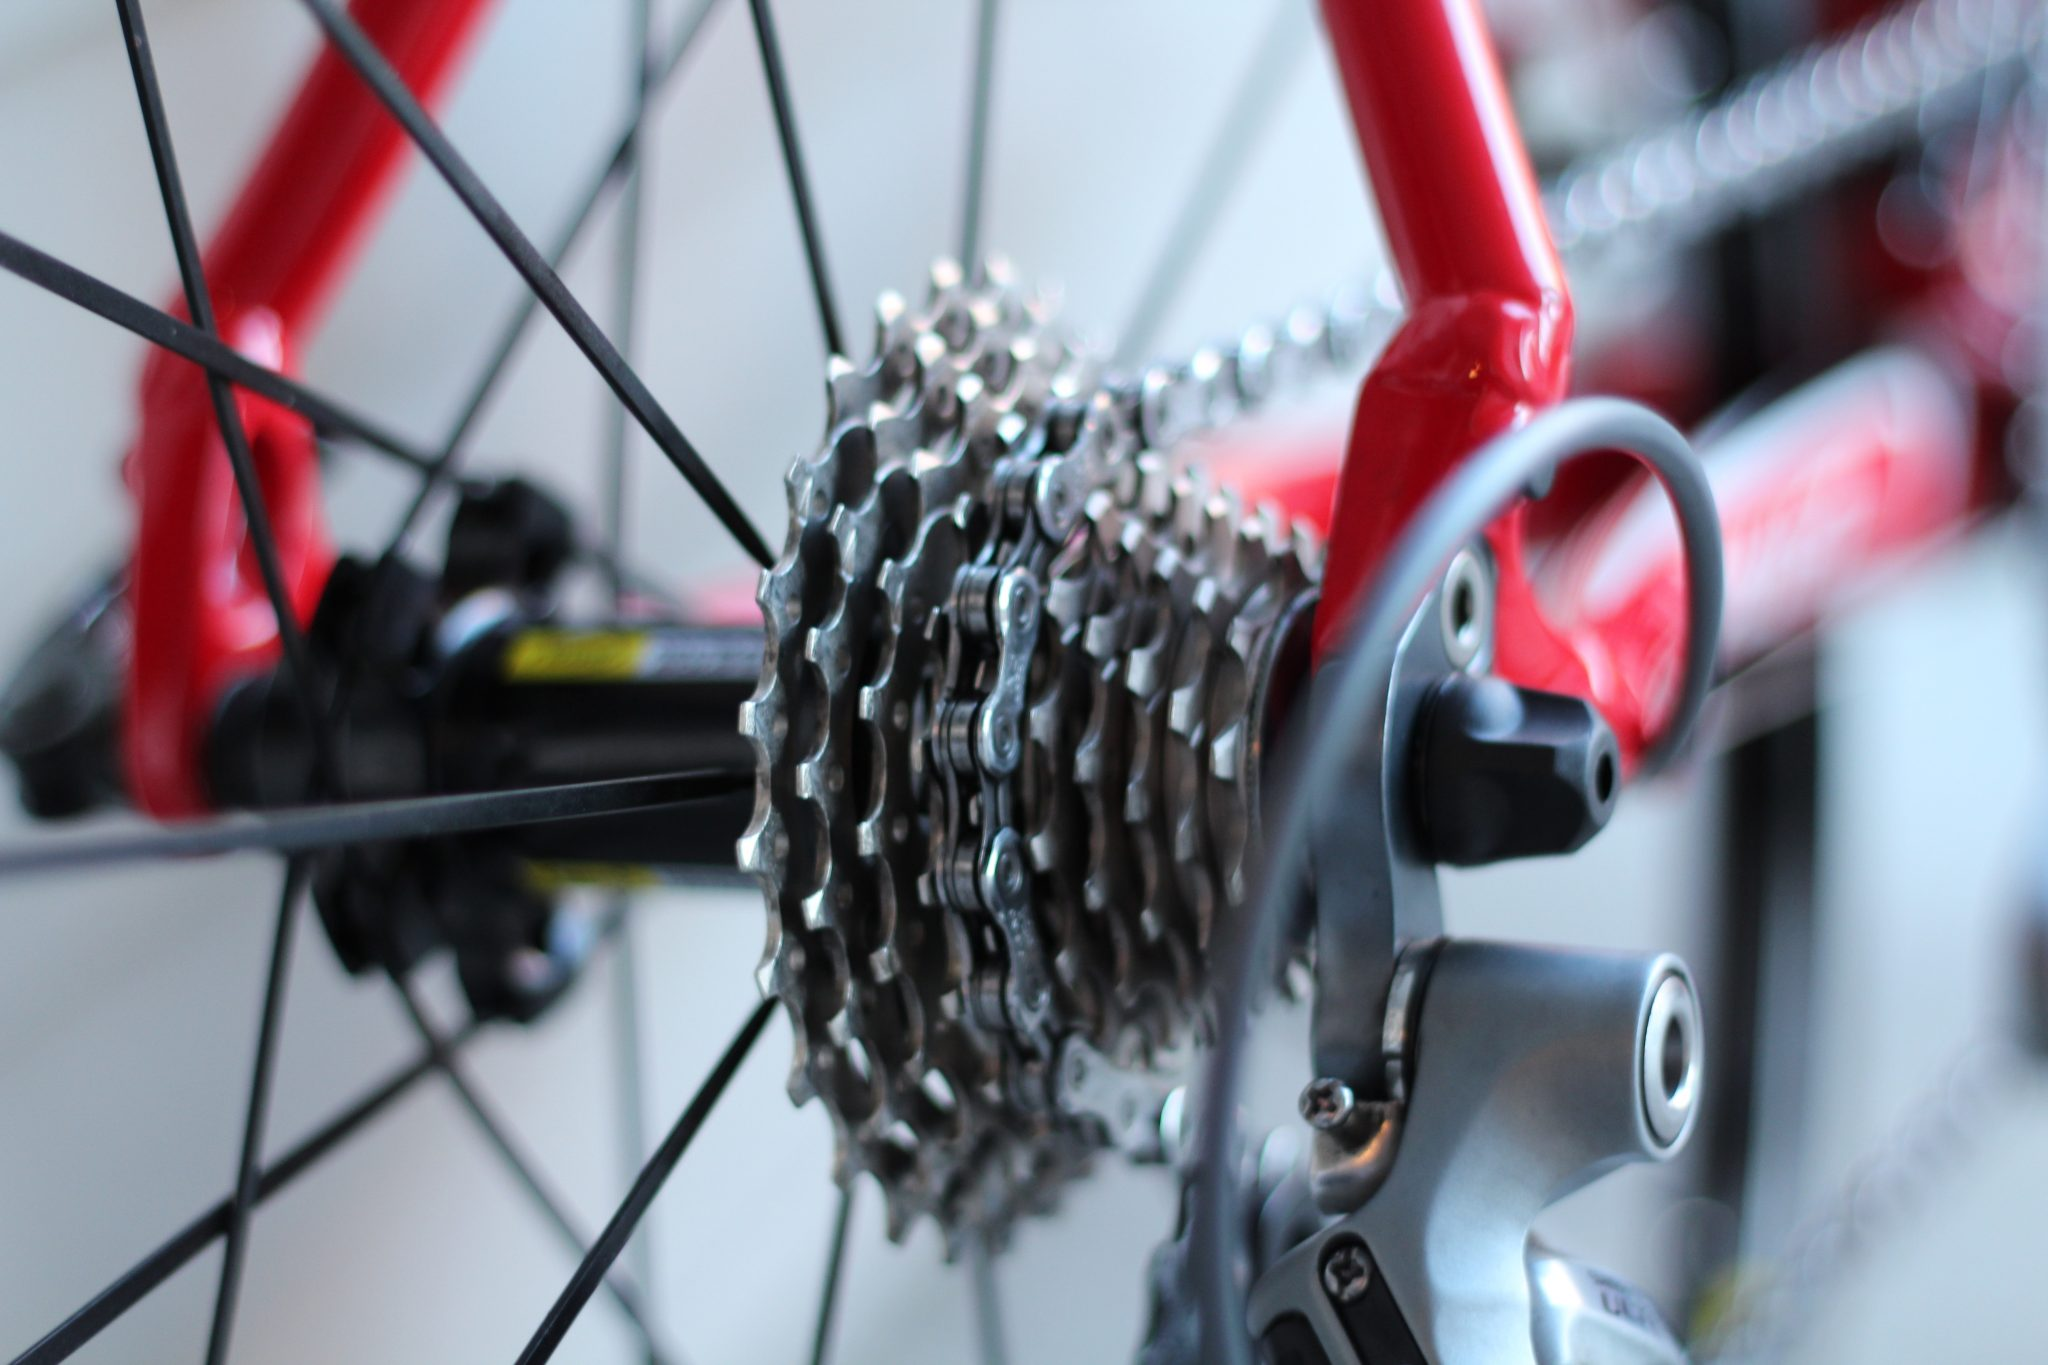 9 Super Simple Steps for Adjusting a Rear Derailleur